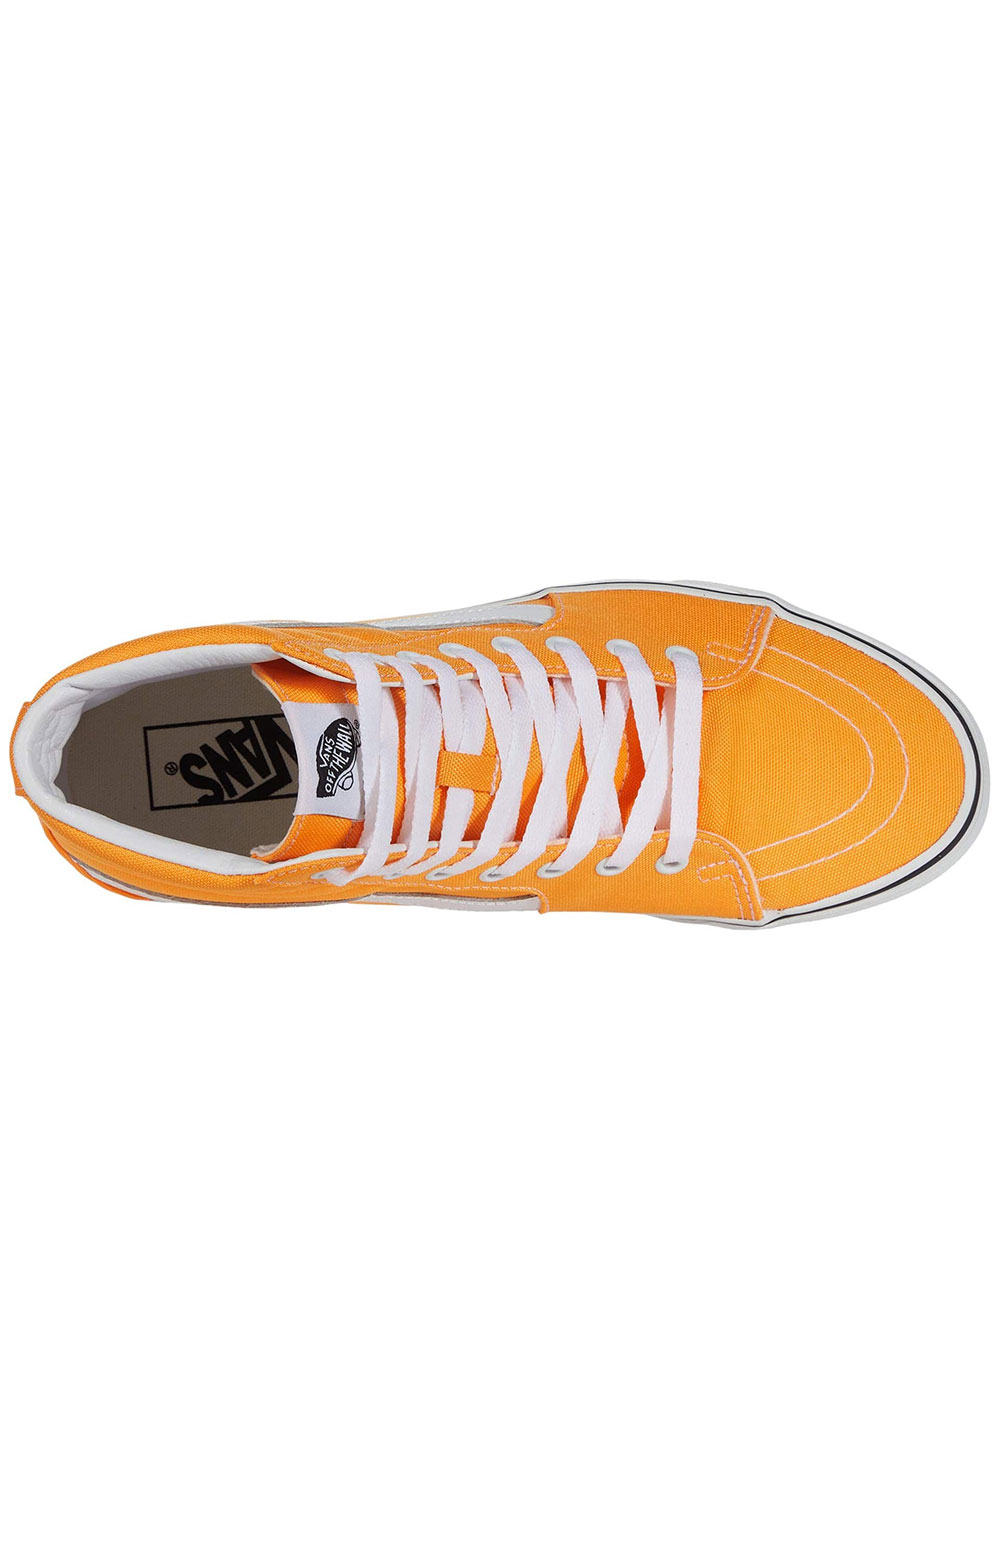 (U3CWT4) Neon Sk8-Hi Shoes - Blazing Orange  4